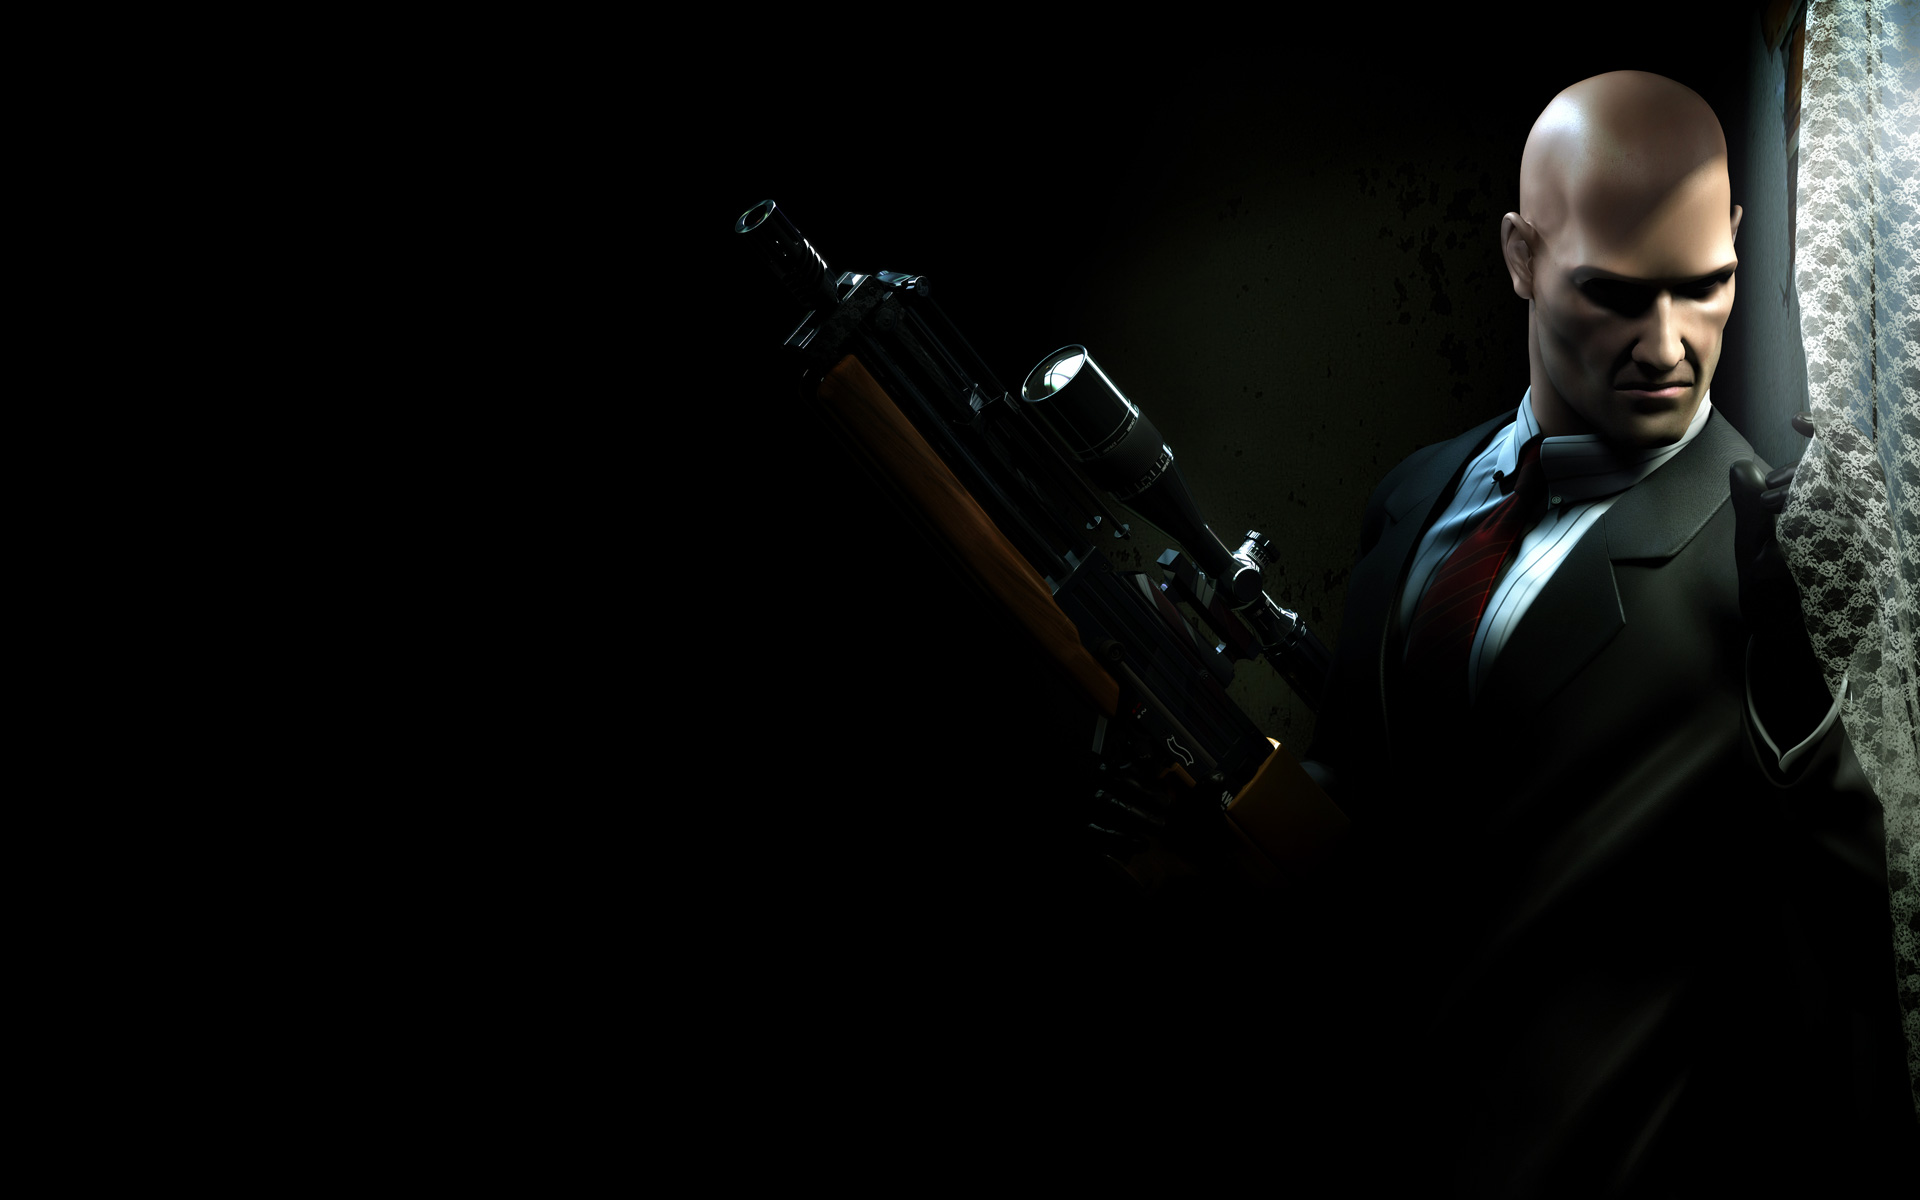 Free Hitman: Contracts Wallpaper in 1920x1200